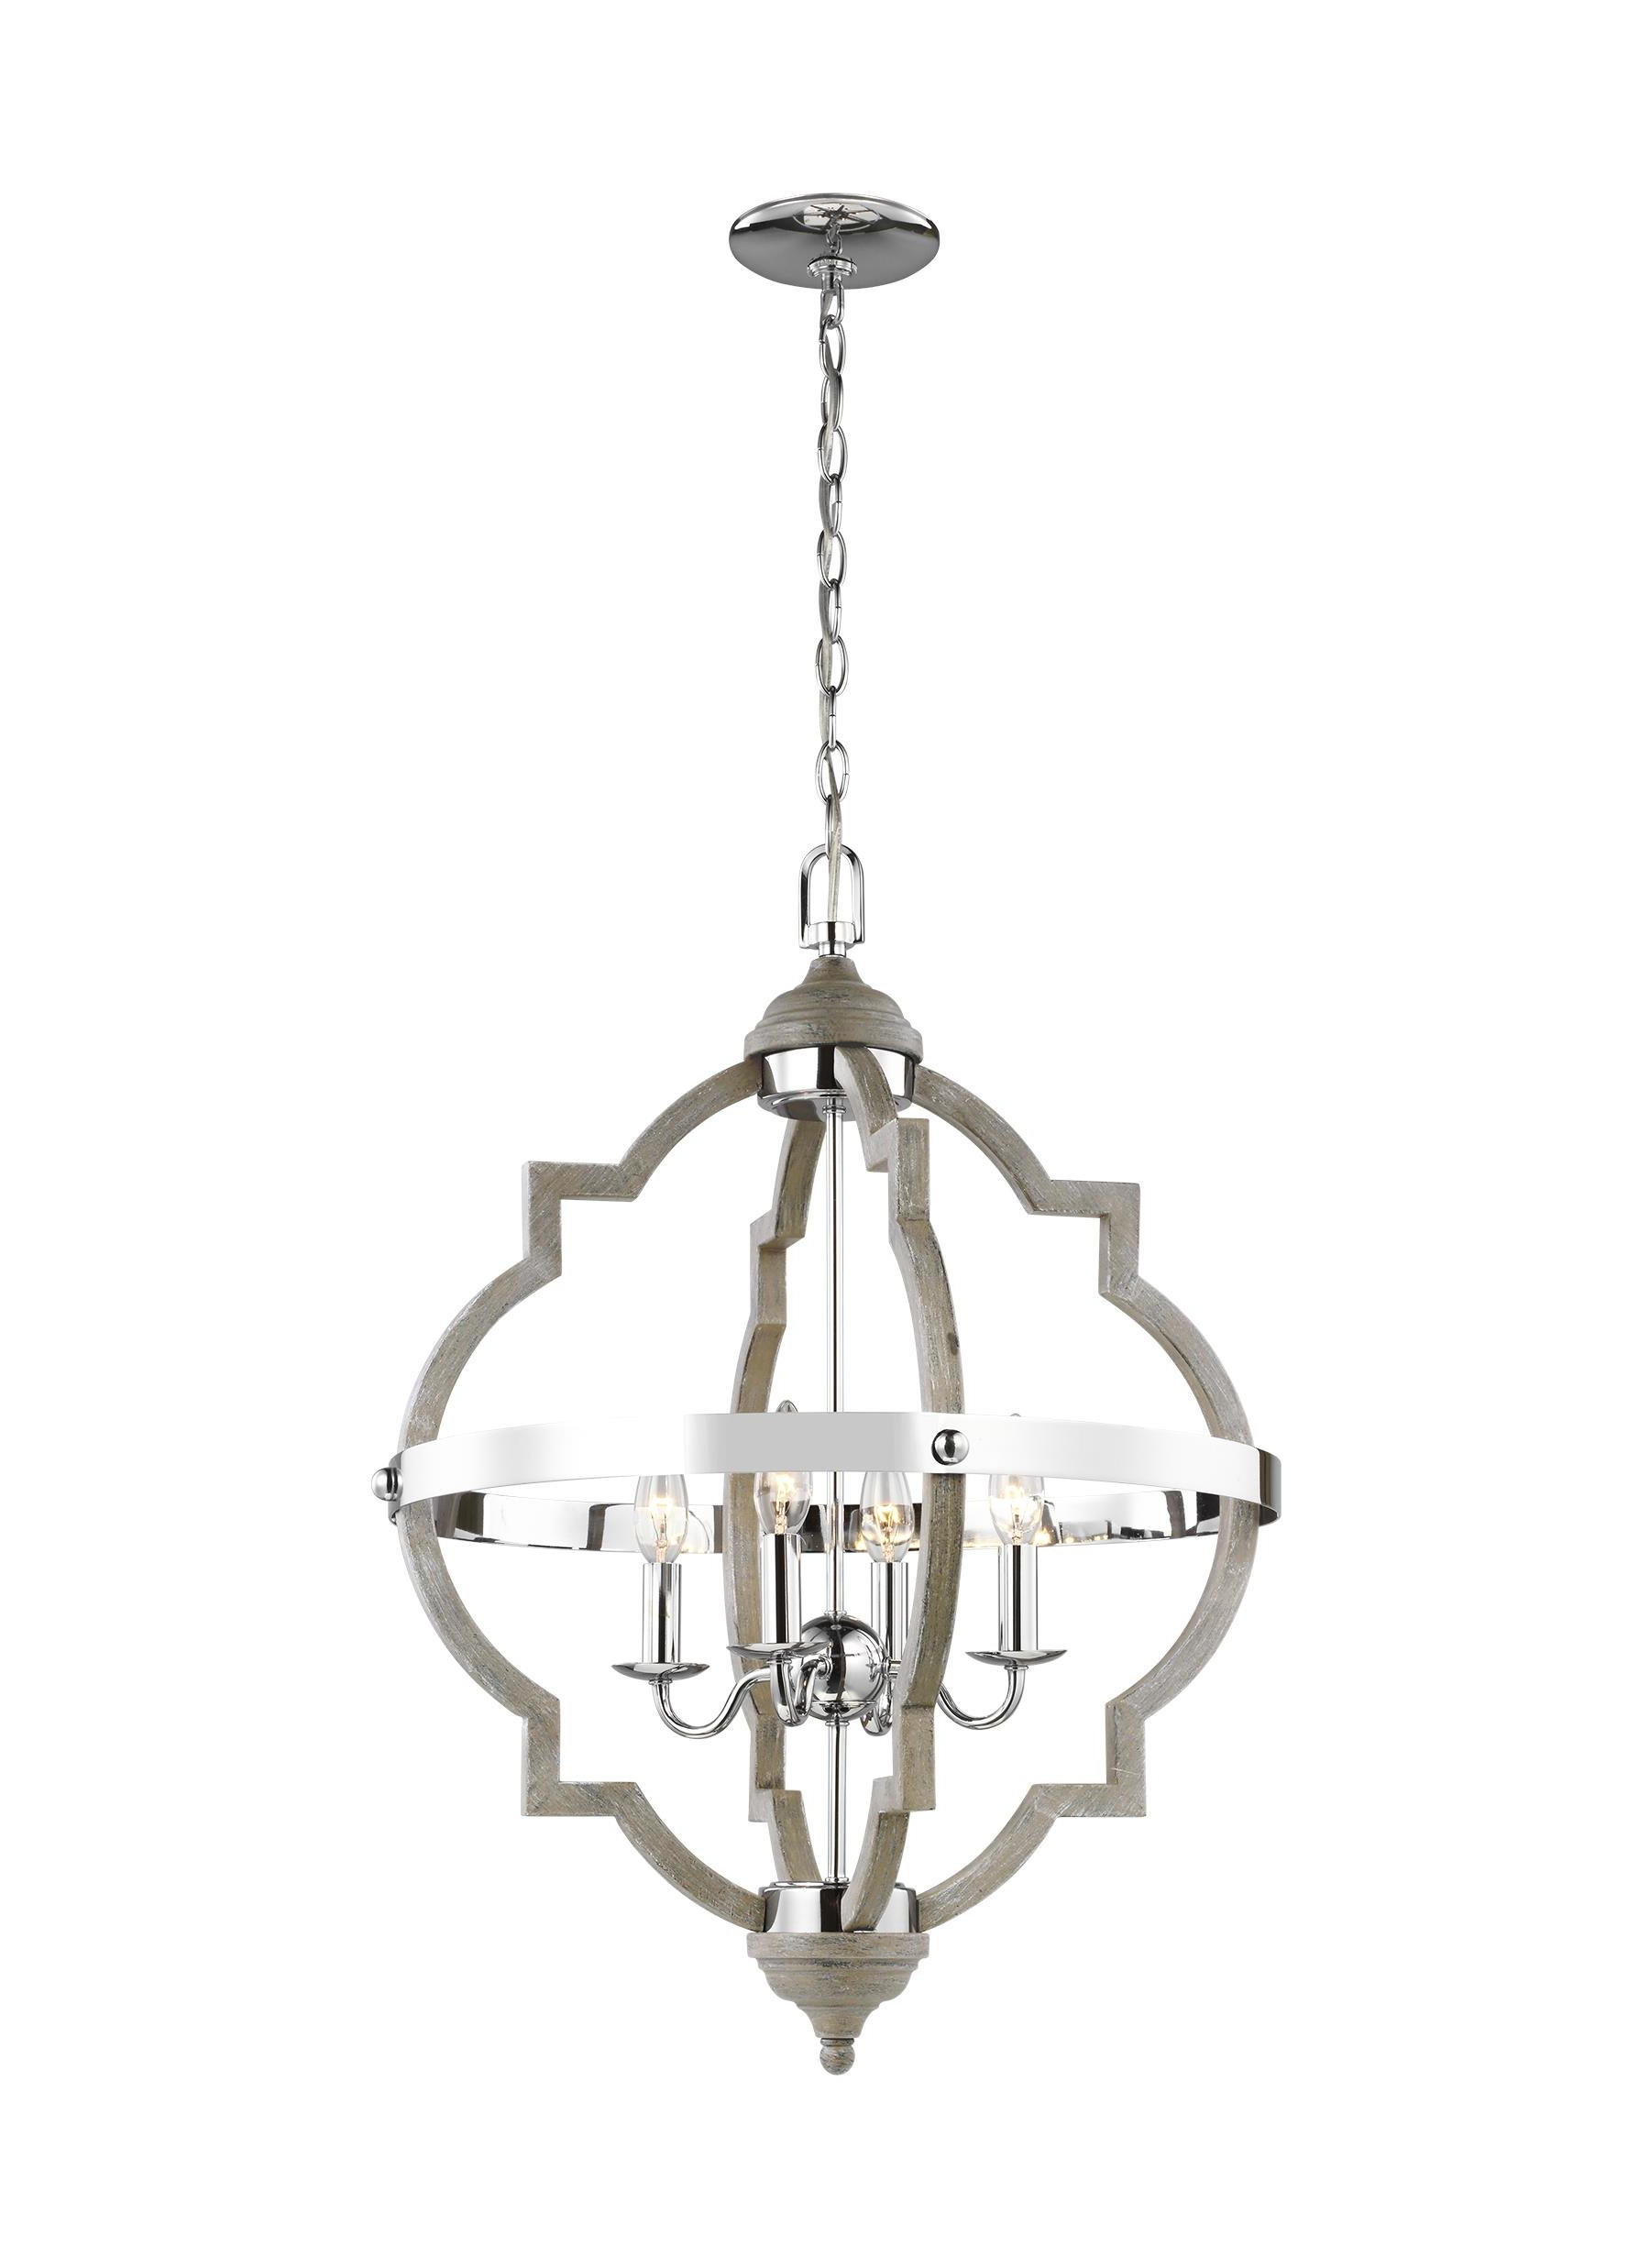 Tiana 4 Light Geometric Chandeliers Within 2020 Bennington 4 Light Geometric Chandelier (View 9 of 20)